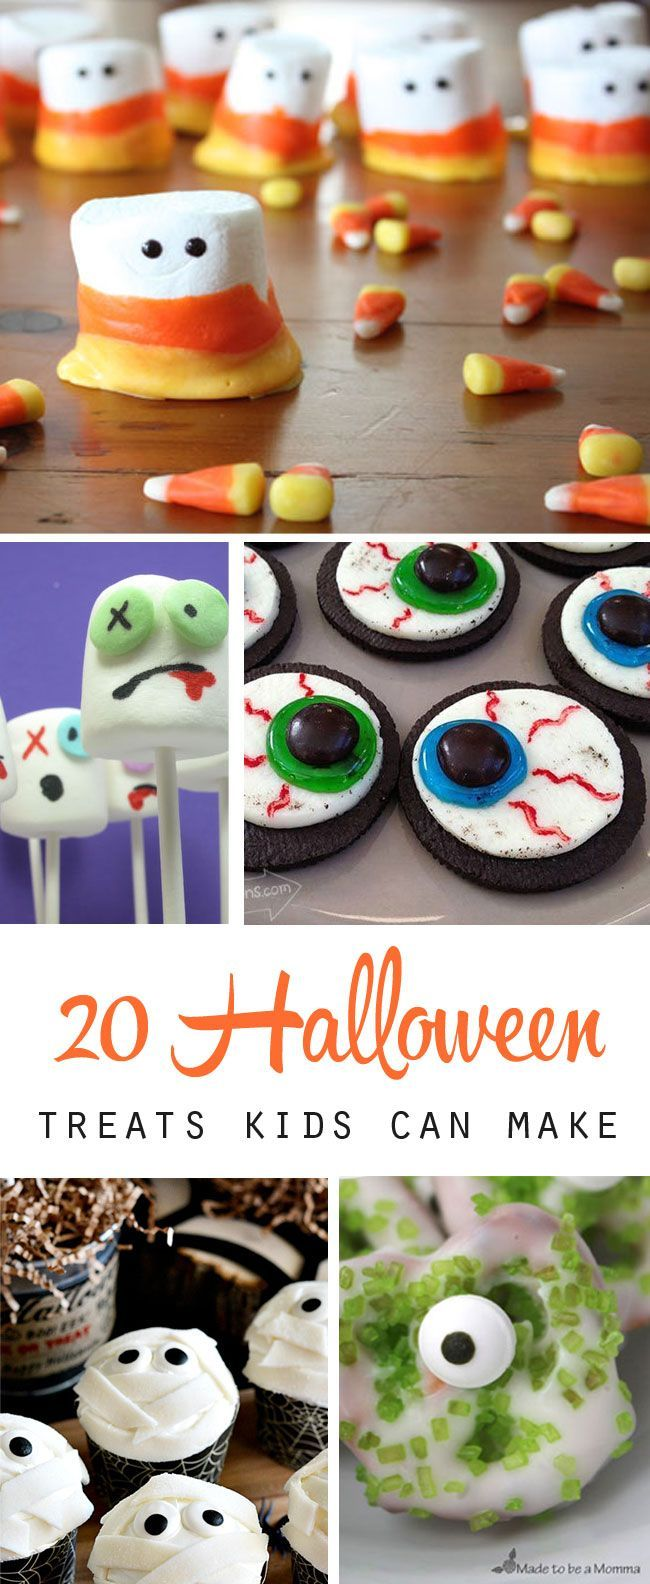 20 fun Halloween treats to make with your kids | Easy, School and ...